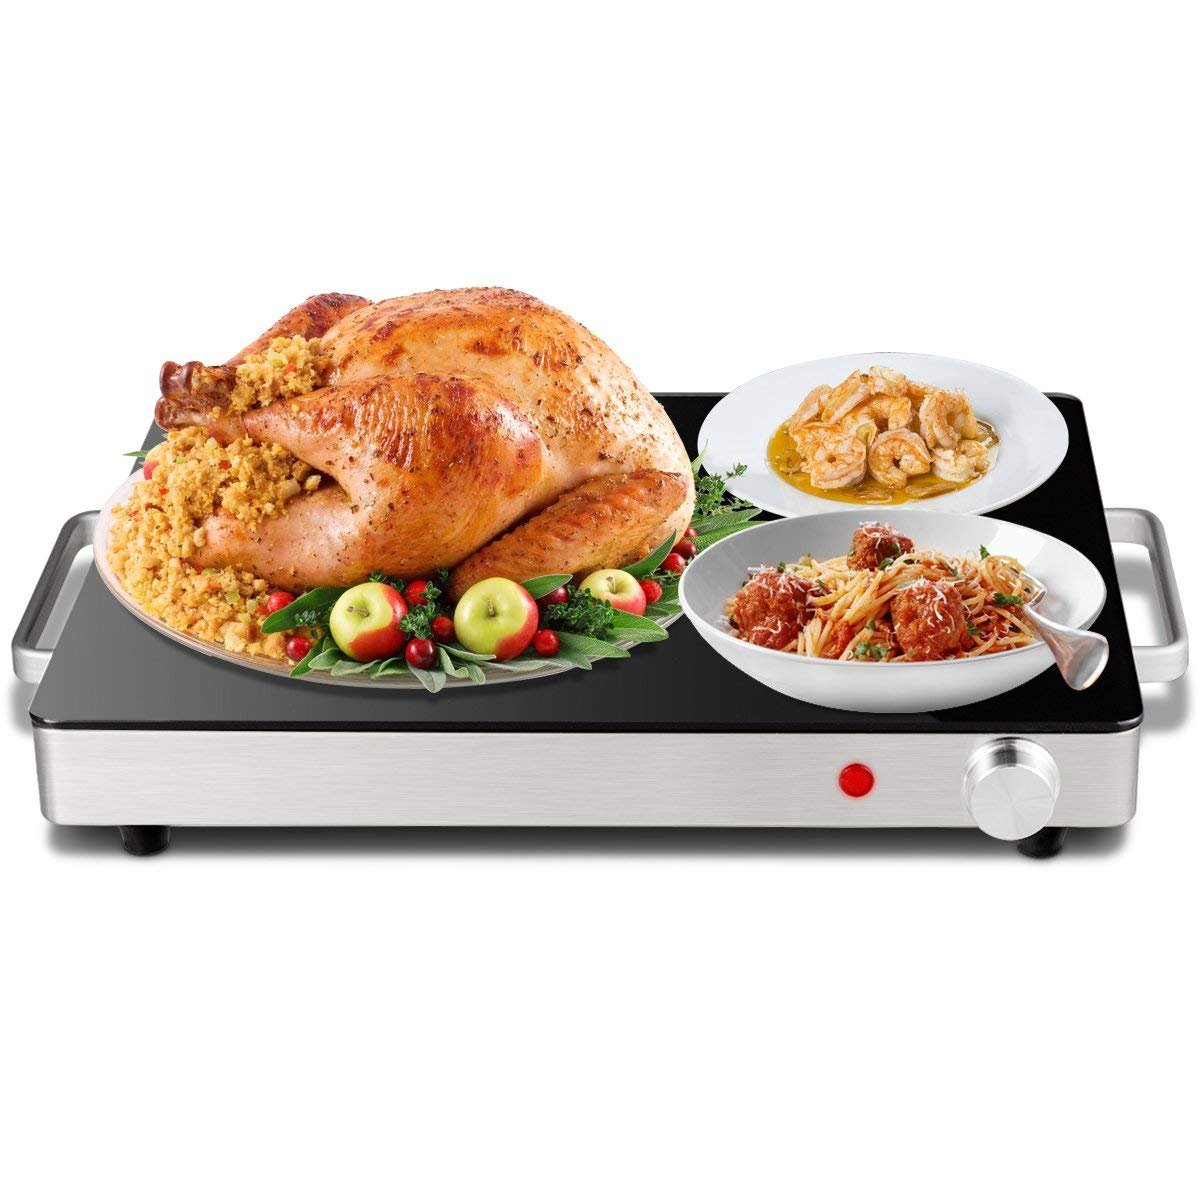 Giantex Warming Tray with Adjustable Temperature Control Perfect For Buffets, Restaurants and Home Dinners by Giantex